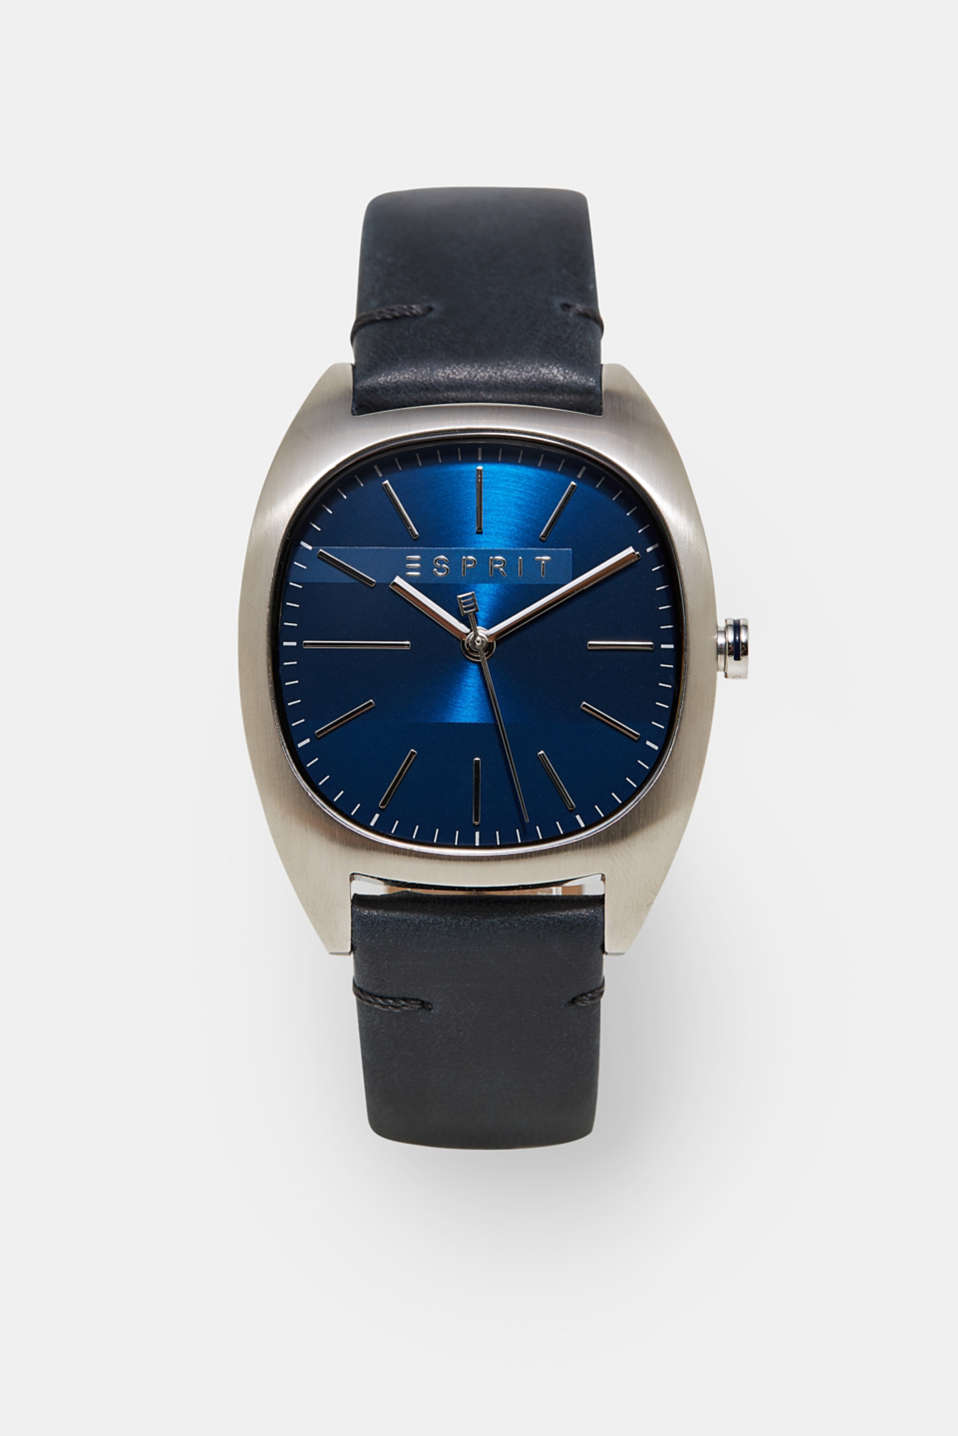 Esprit - Mens watch with a leather strap